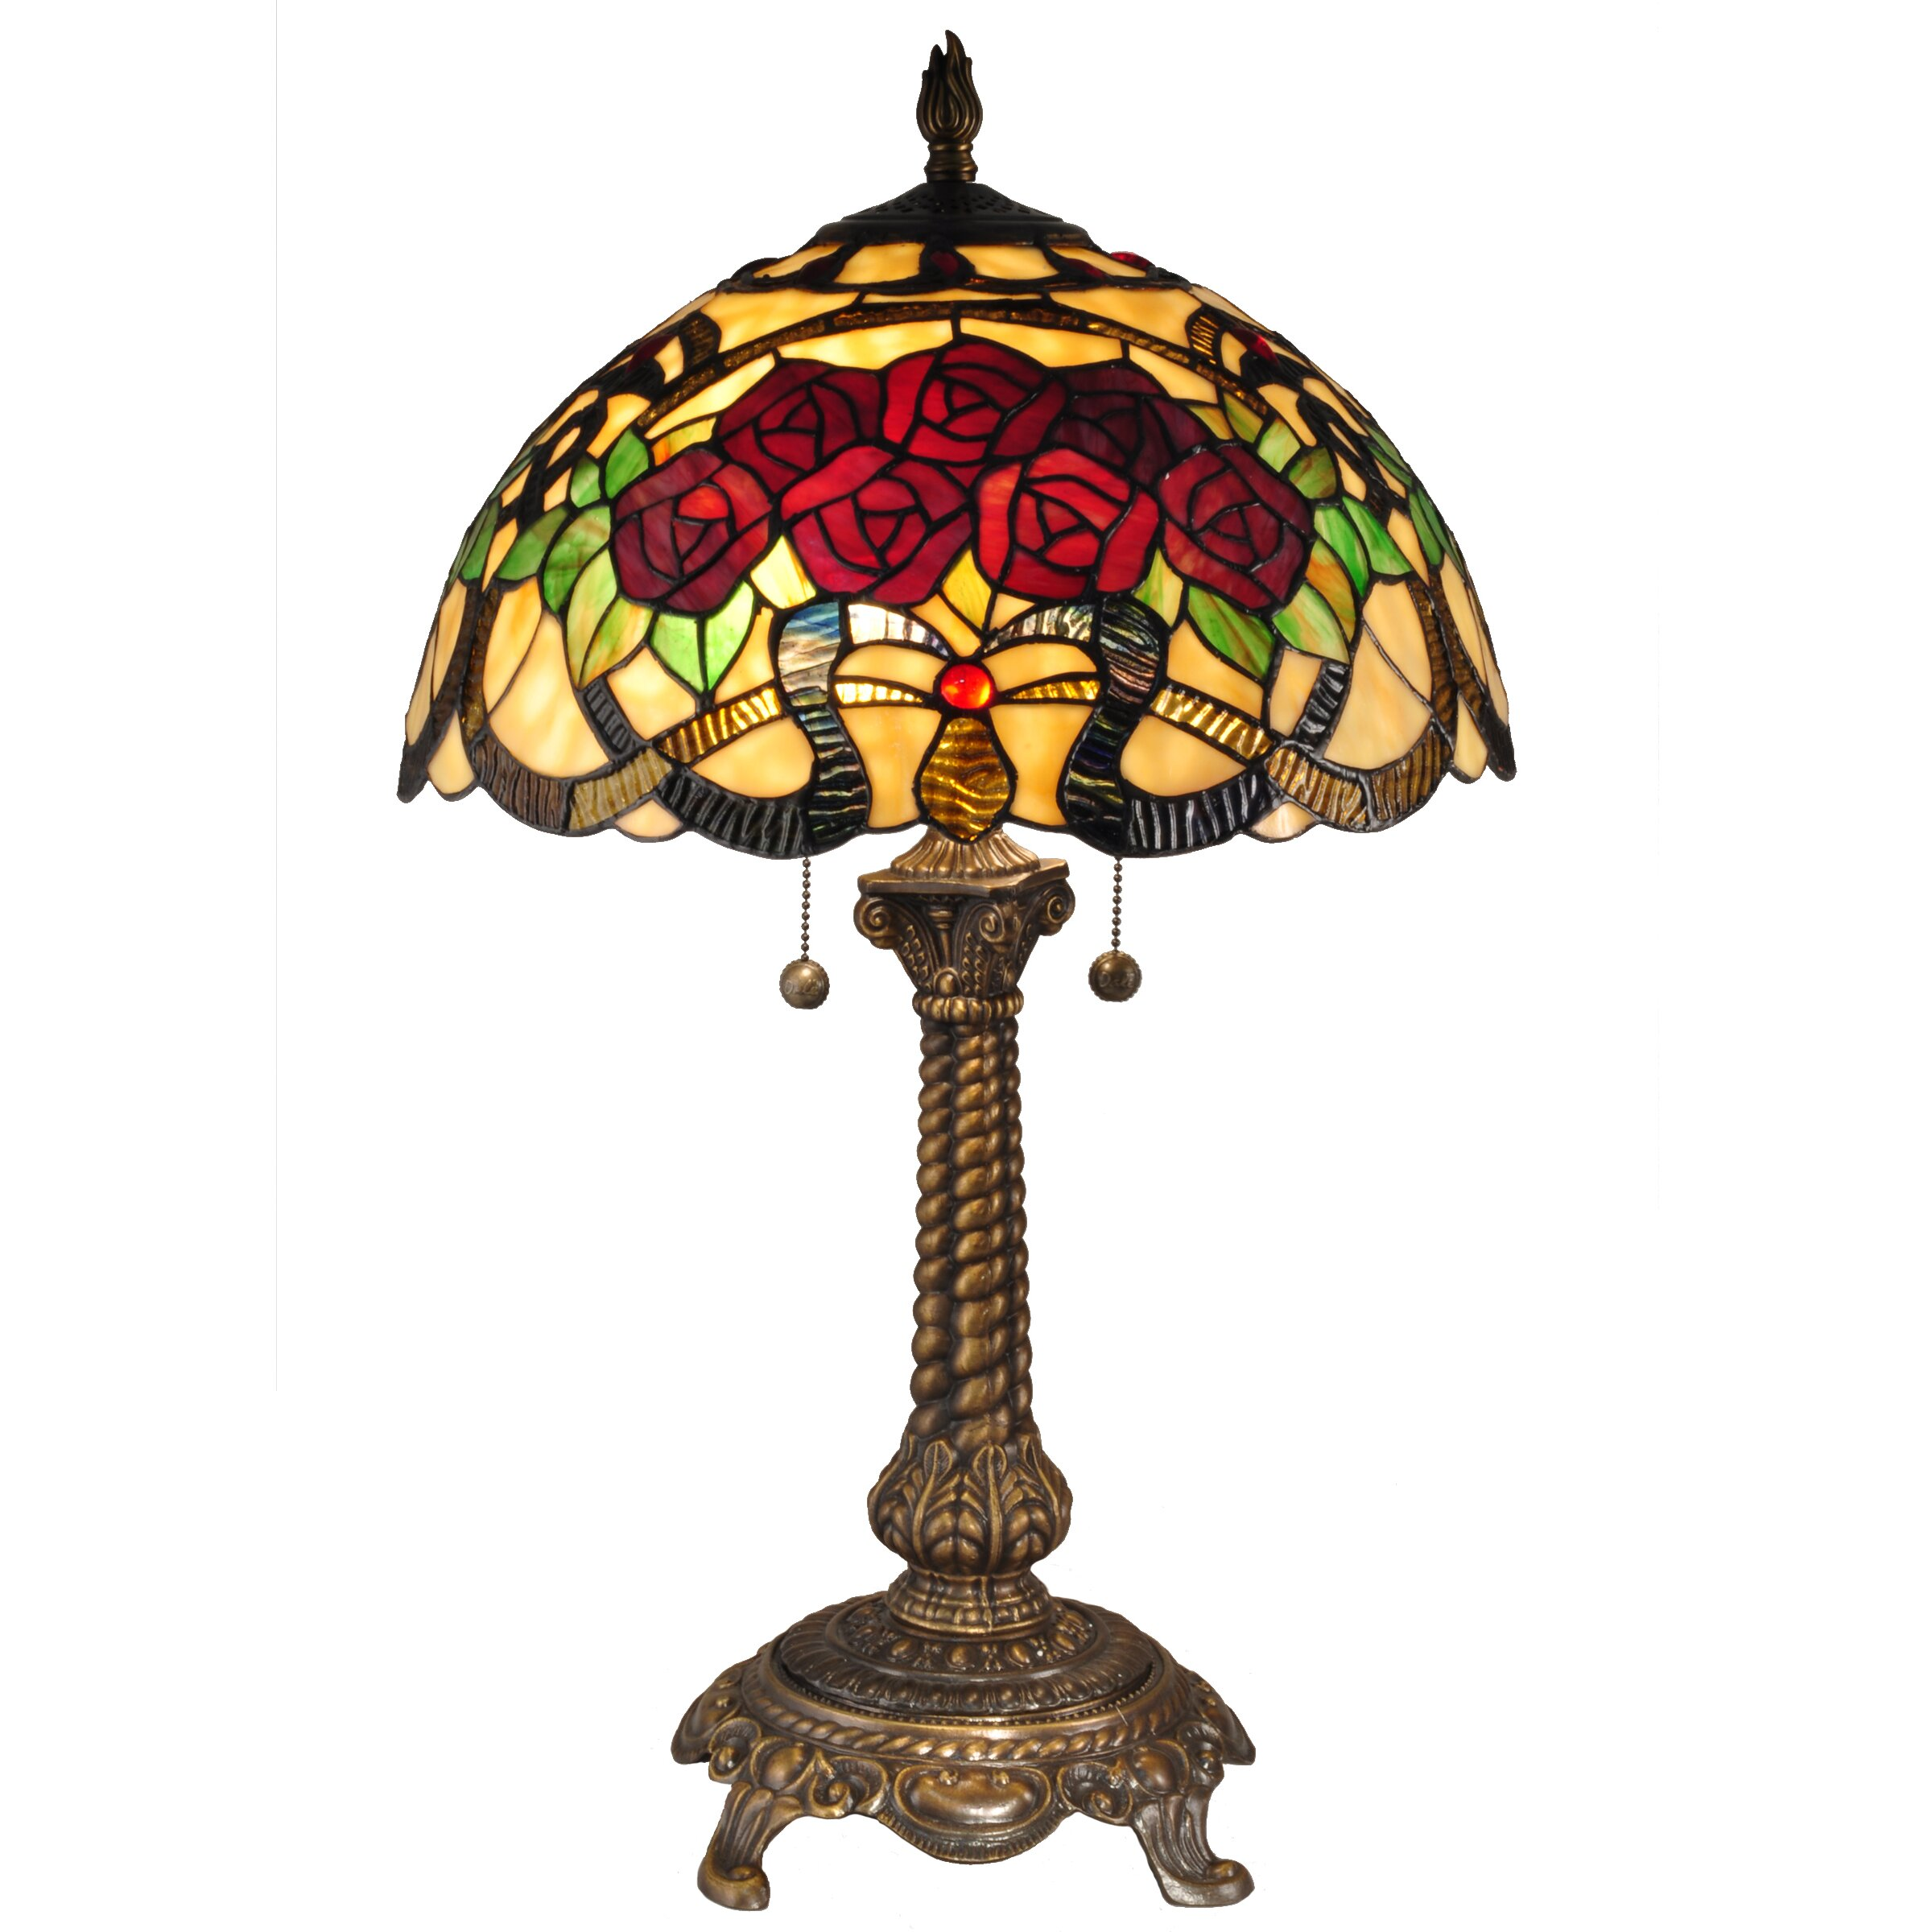 dale tiffany red rose 27 h table lamp with bowl shade reviews. Black Bedroom Furniture Sets. Home Design Ideas